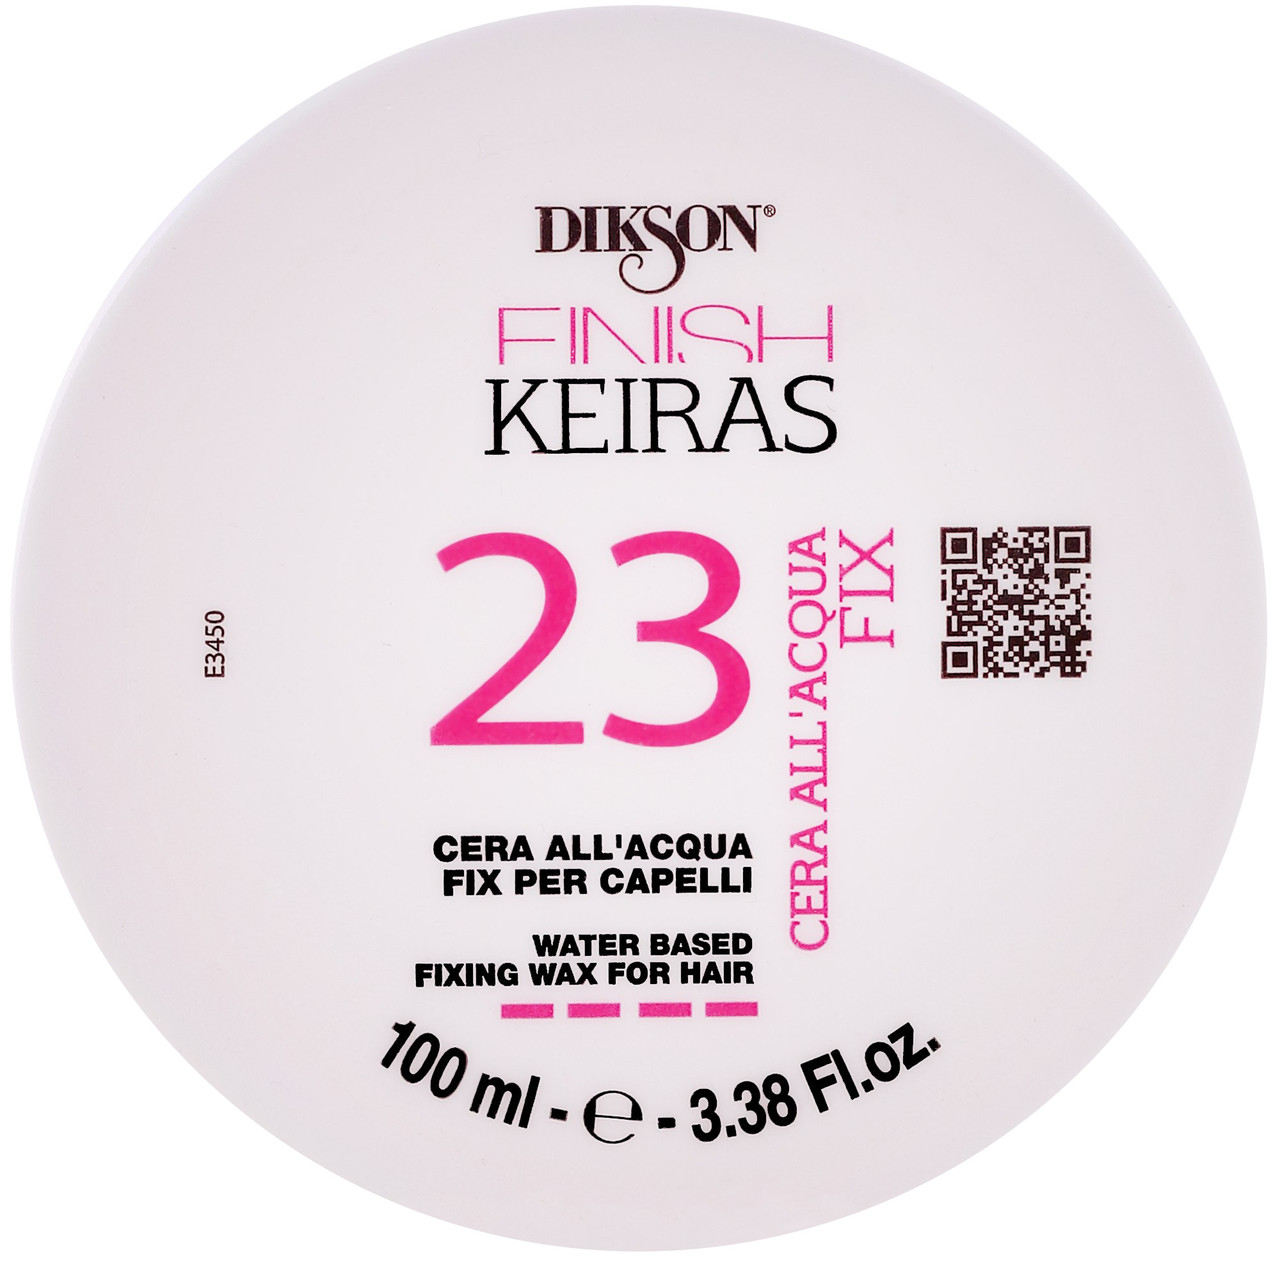 "Dikson Keiras Finish Water Based Fixing Wax For Hair 23 - Воск на основе ароматизированной воды ""Роза"", 100 ml"